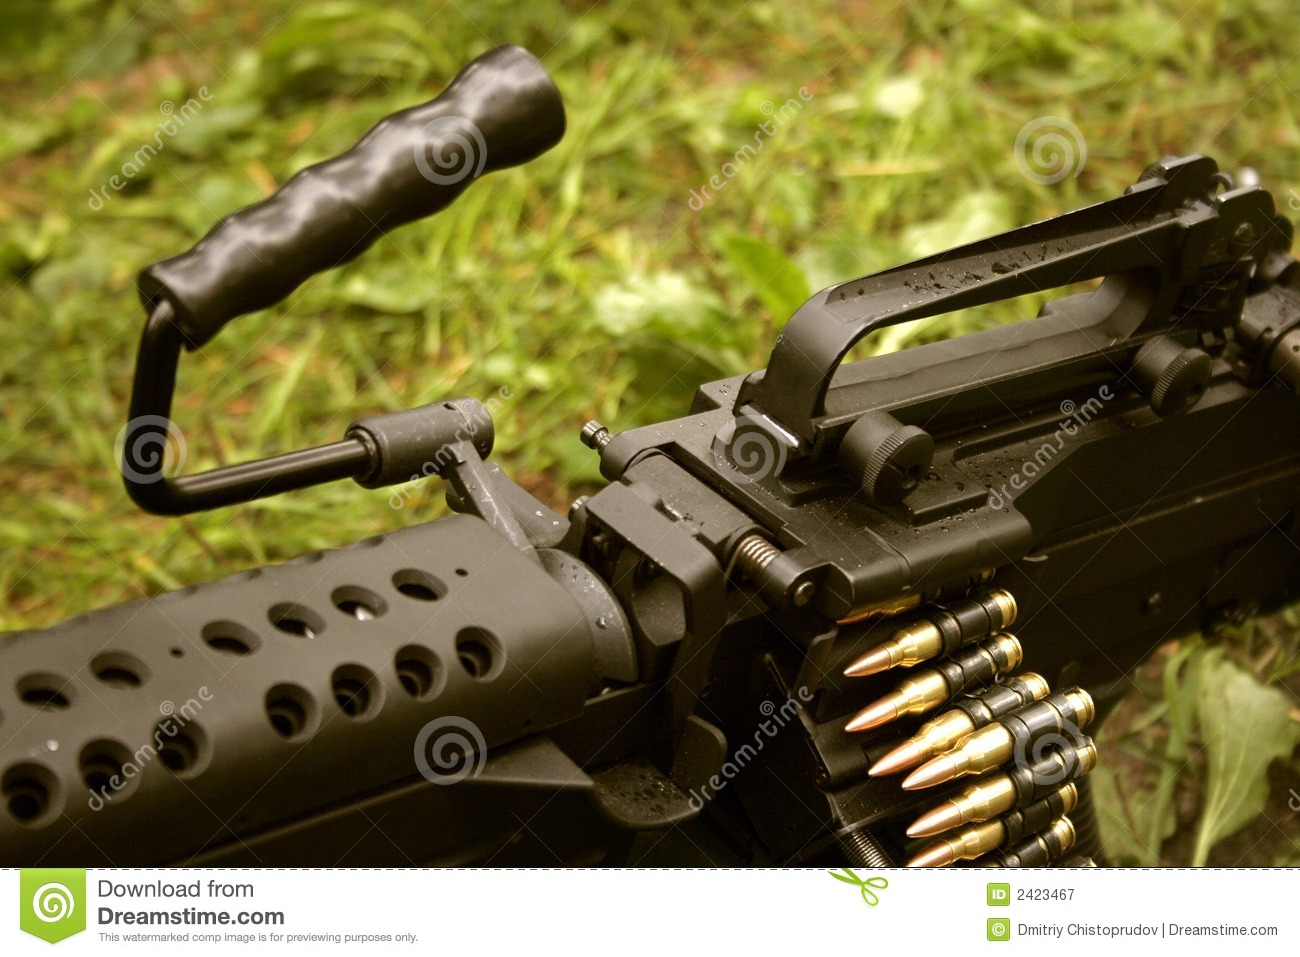 are machine guns in the united states